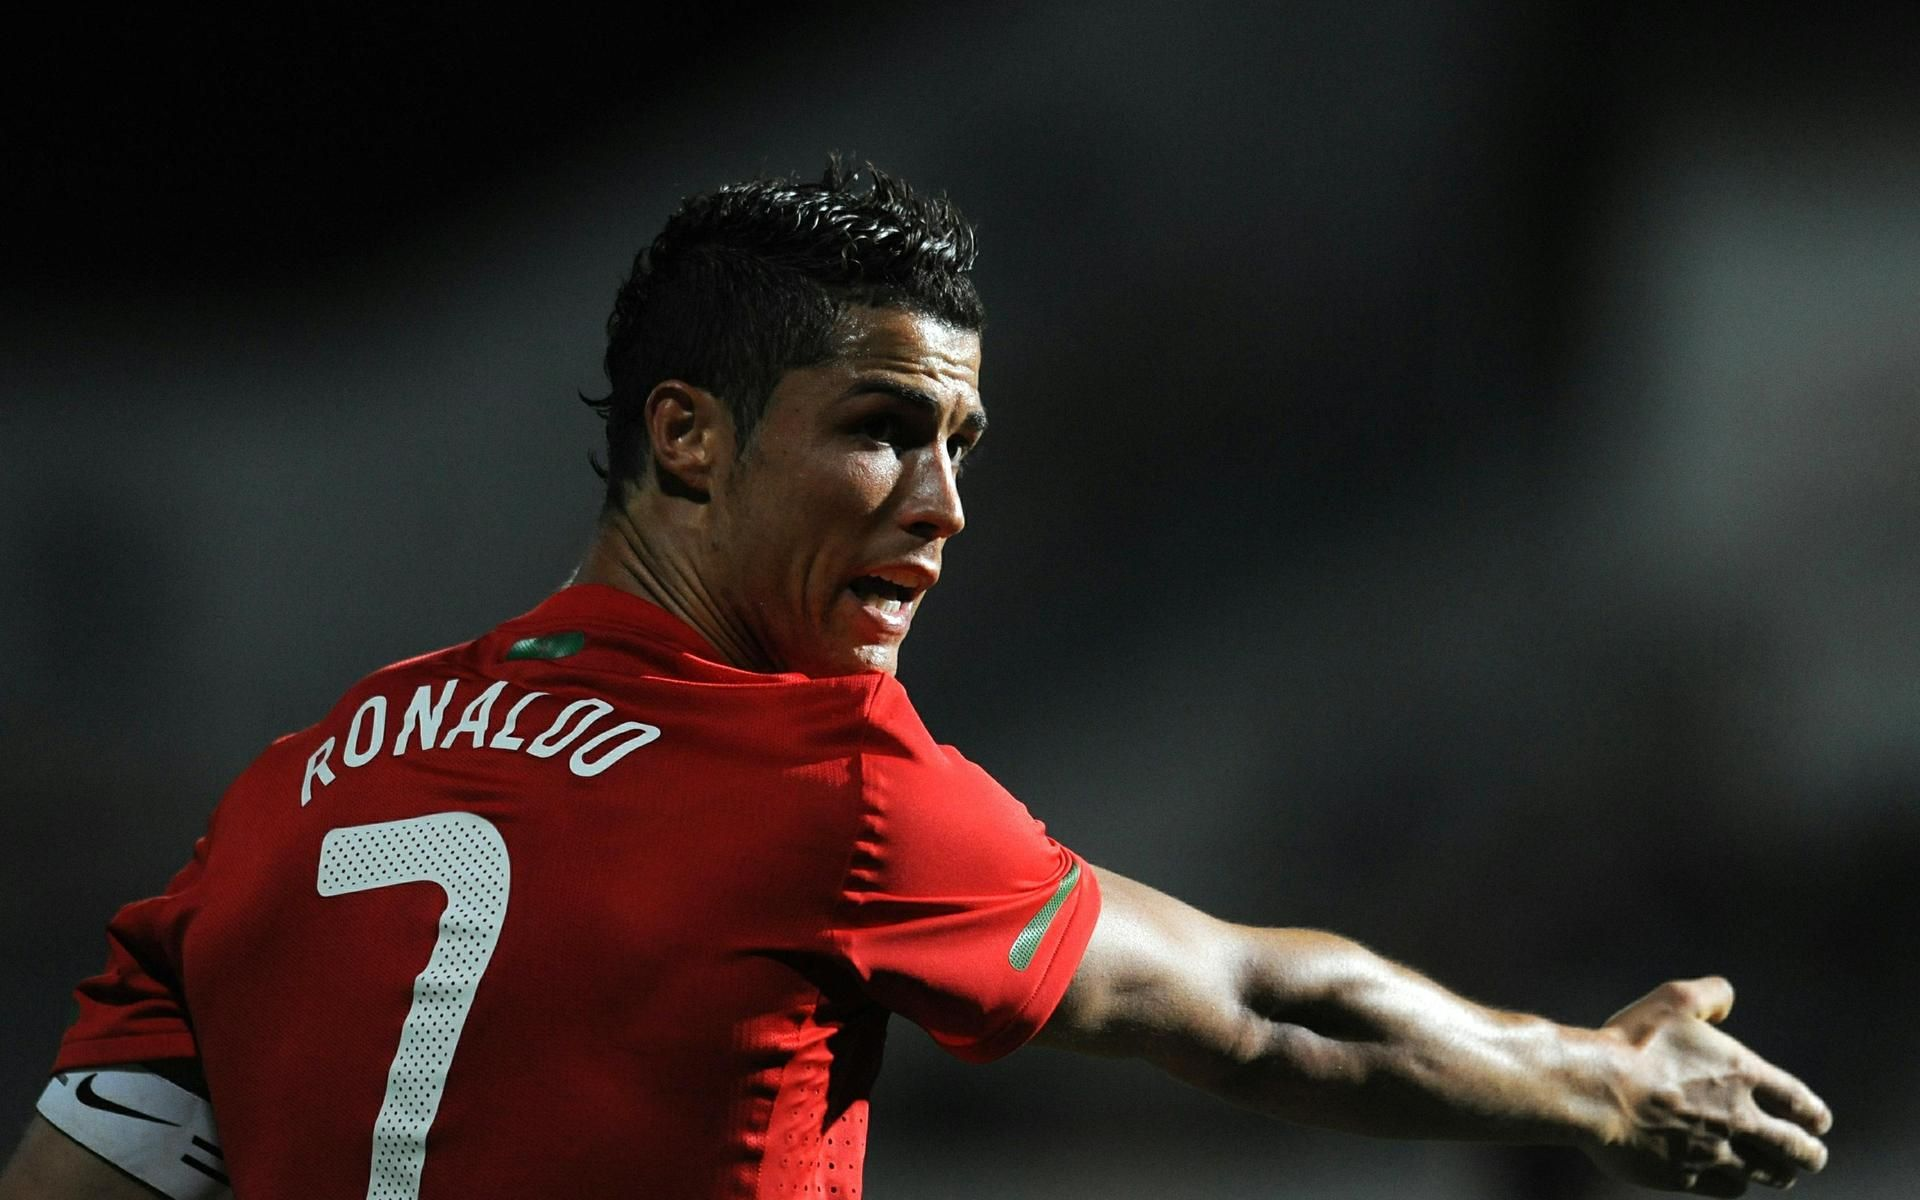 cristiano ronaldo hd wallpapers collection for free download | hd